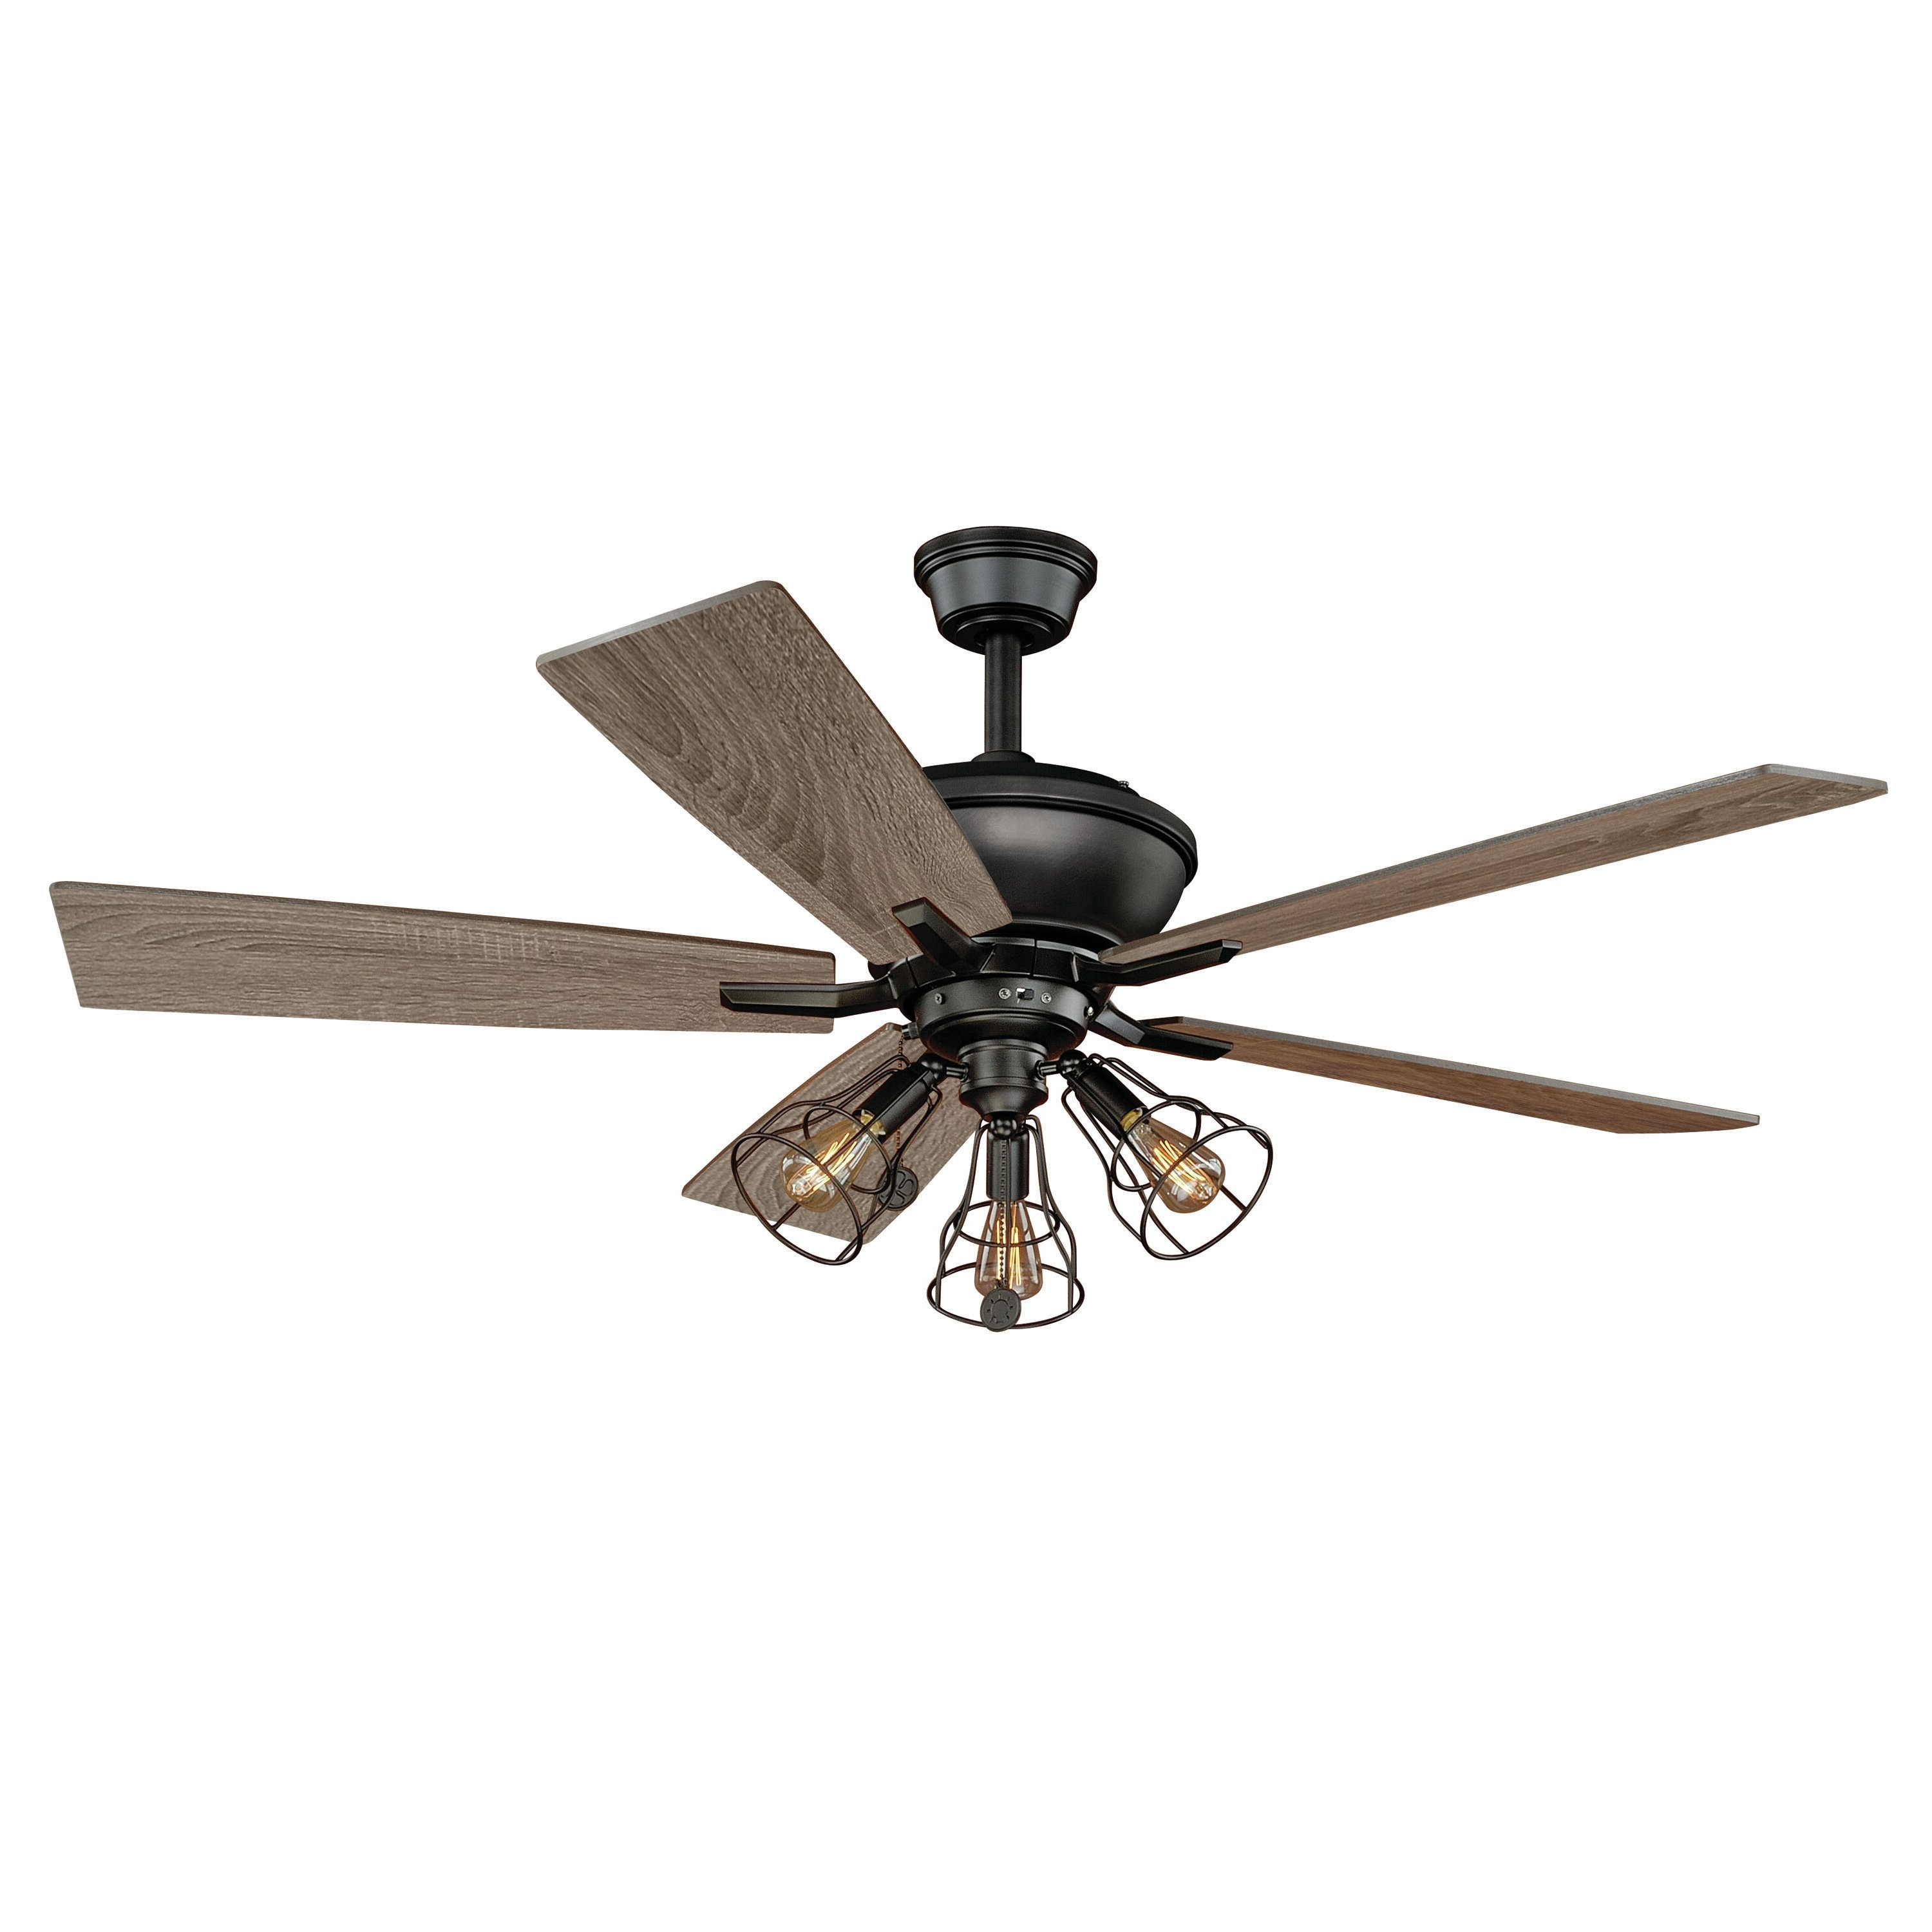 "52"" Clybourn 5 Blade Ceiling Fan In Fashionable Ratcliffe 5 Blade Led Ceiling Fans (View 8 of 20)"